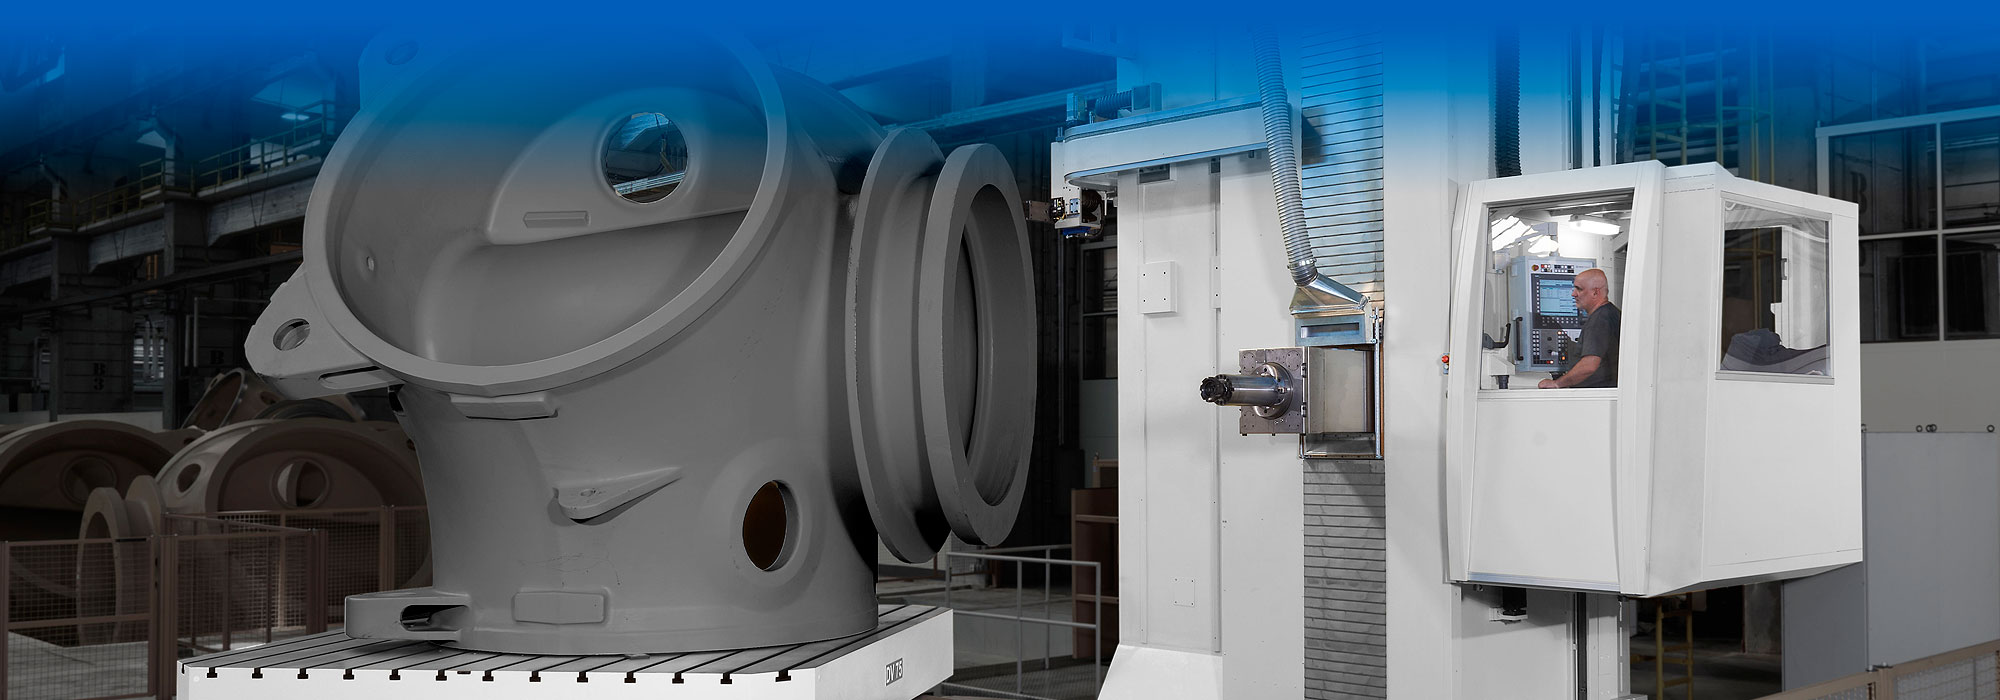 United Precision Services - Horizontal Boring Mills - Vertical & Horizontal Lathes - High Productivity Machining Centers - Multi-Process Machining Centers - 5-Axis Portal Milling Machines